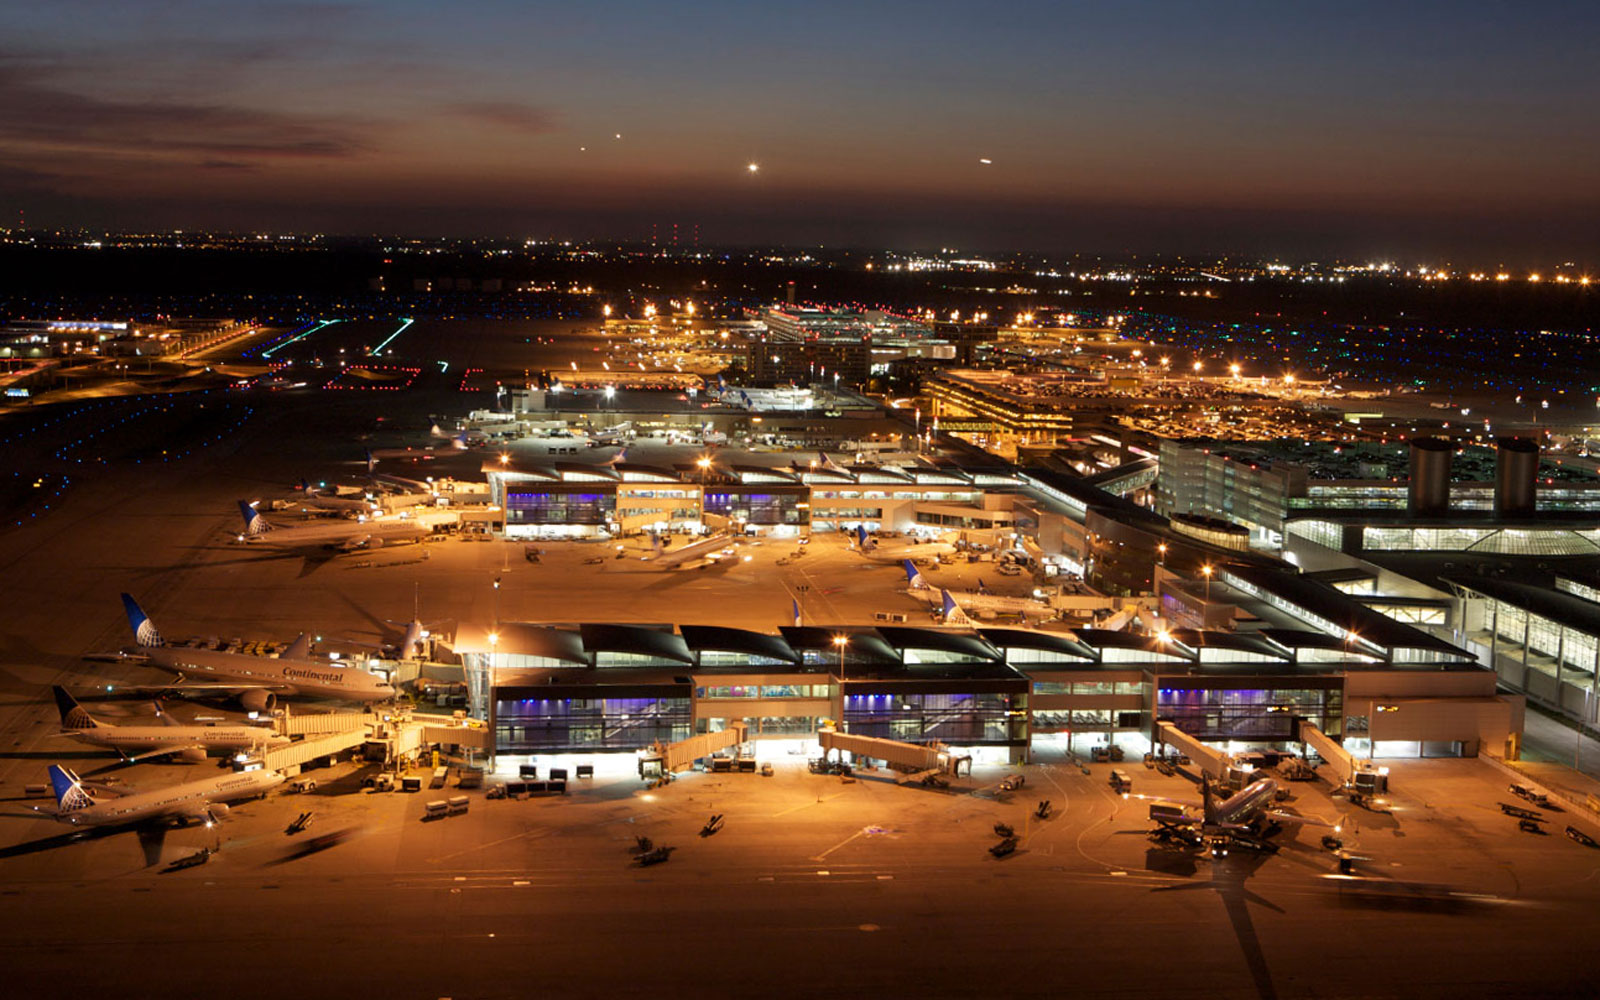 America's best and worst airports: Houston (IAH)